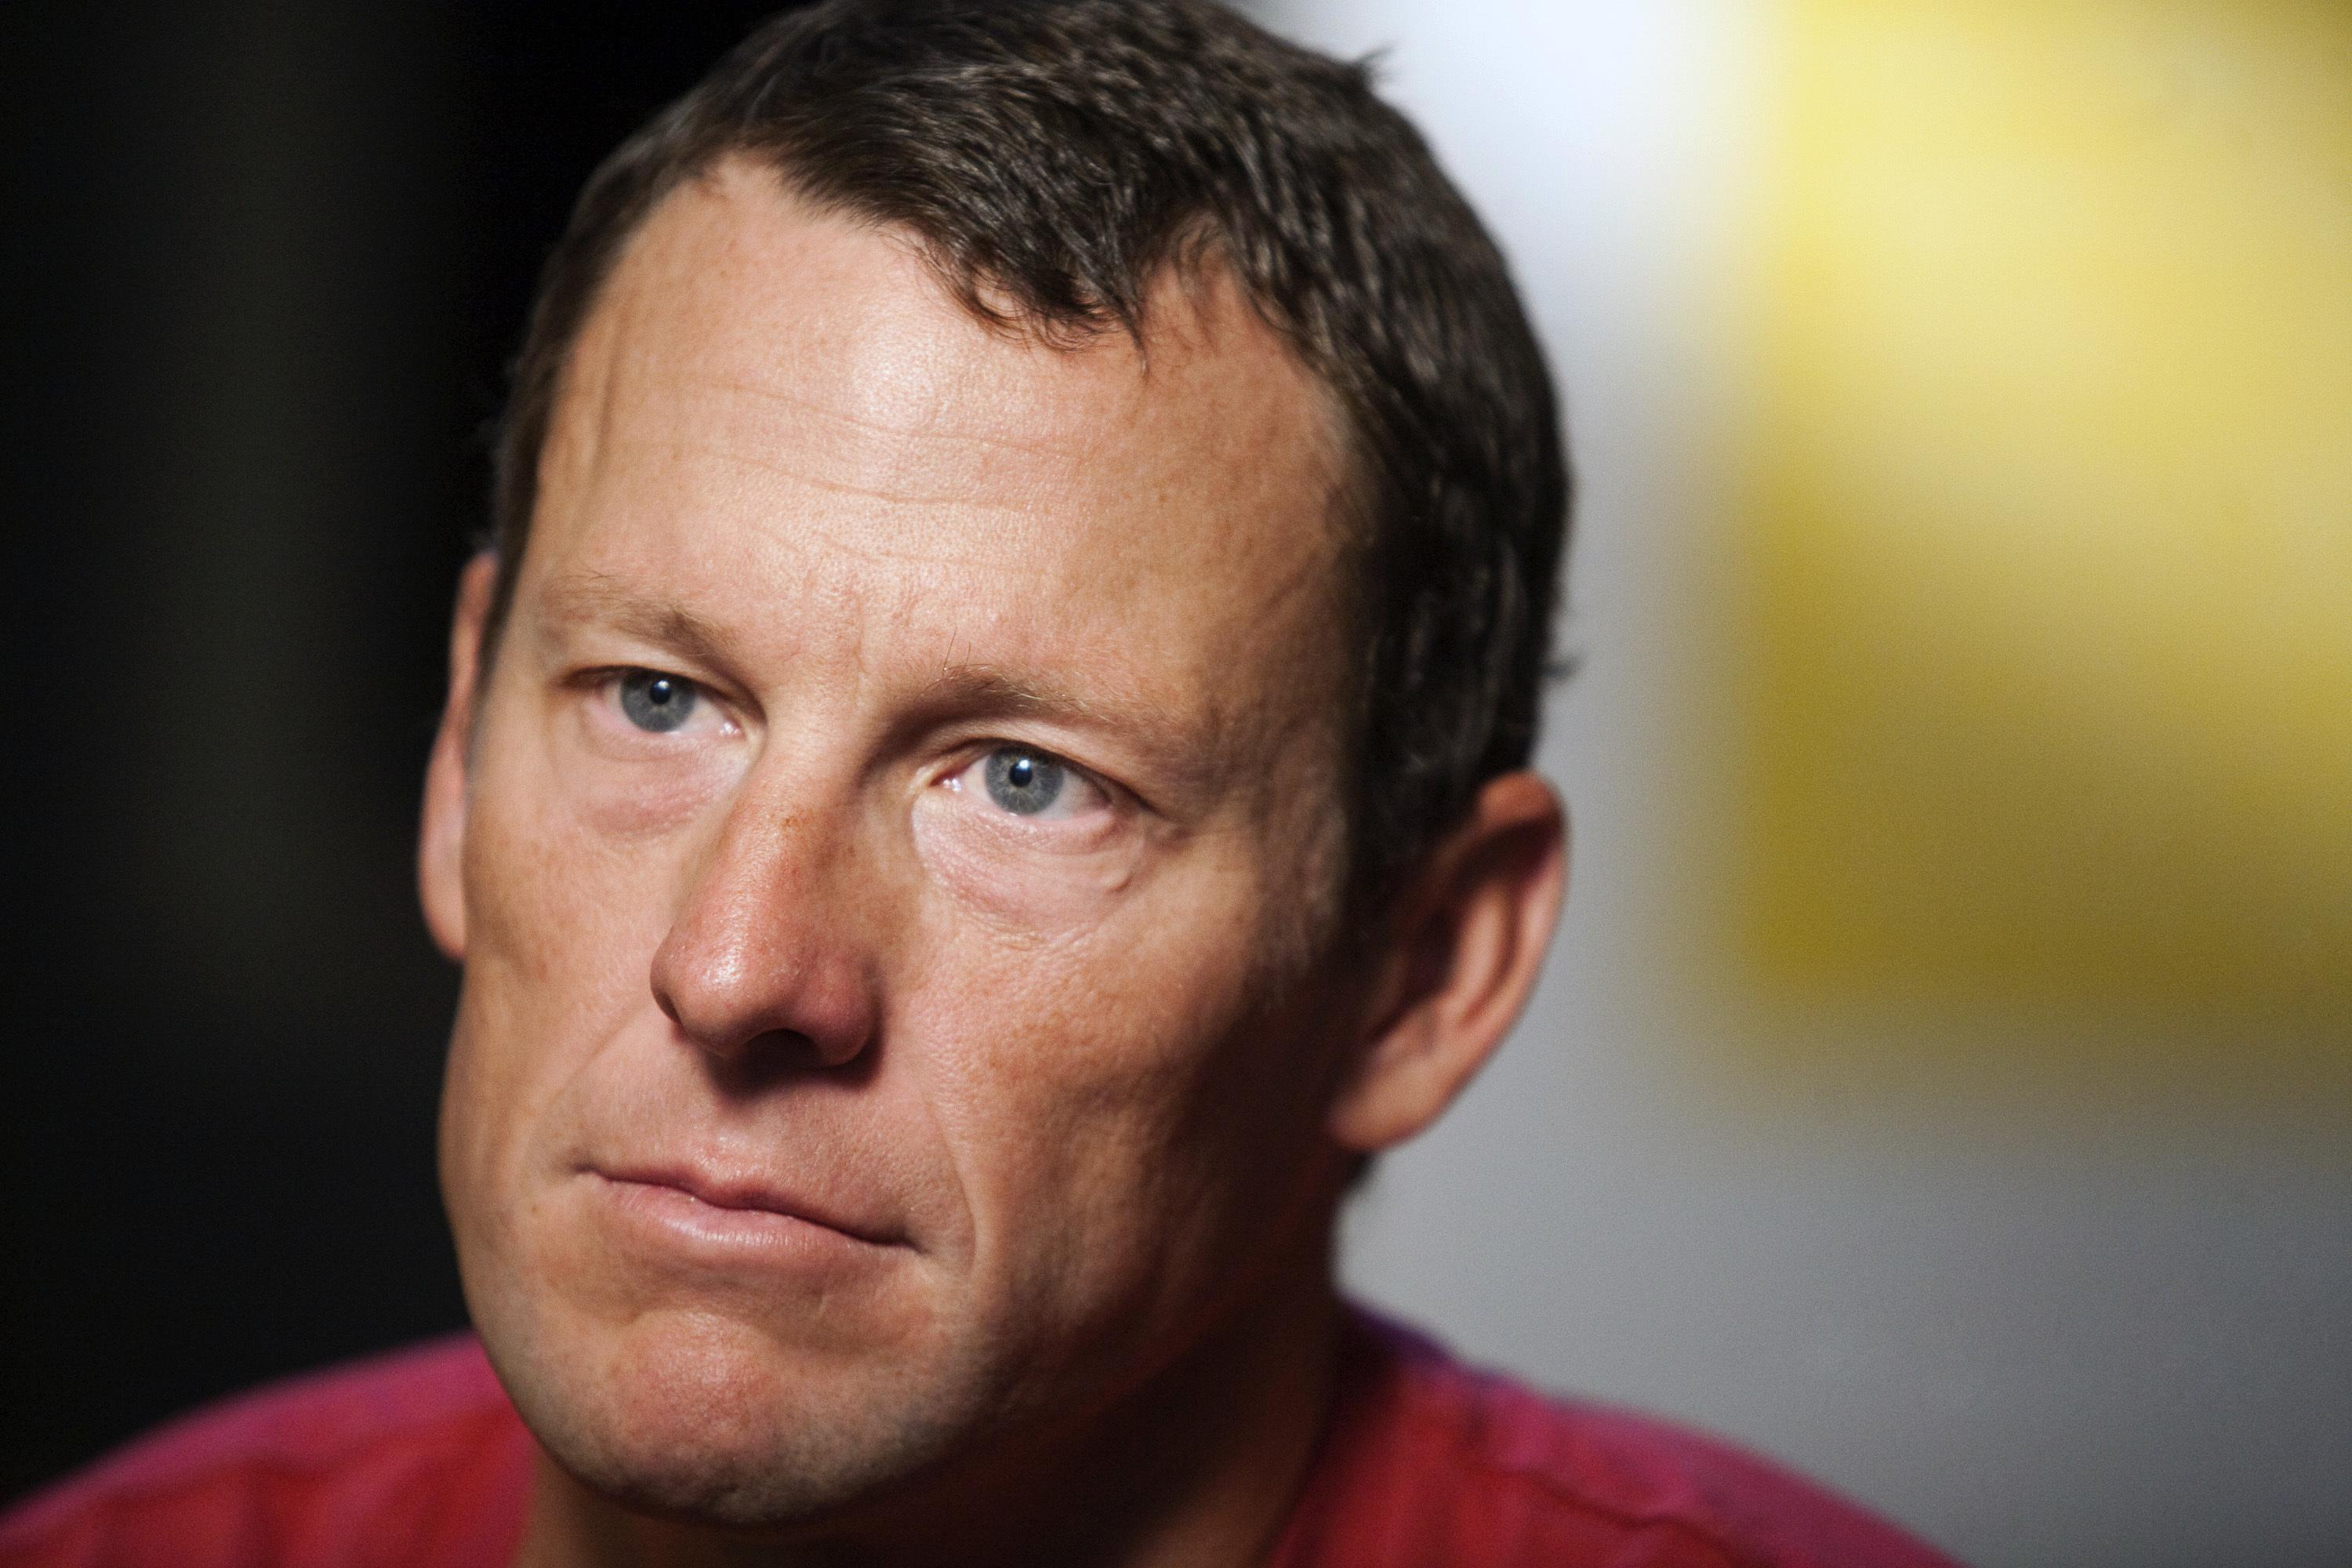 Lance Arsmtrong ruined his career taking the banned drug EPO which has been proven didn't work